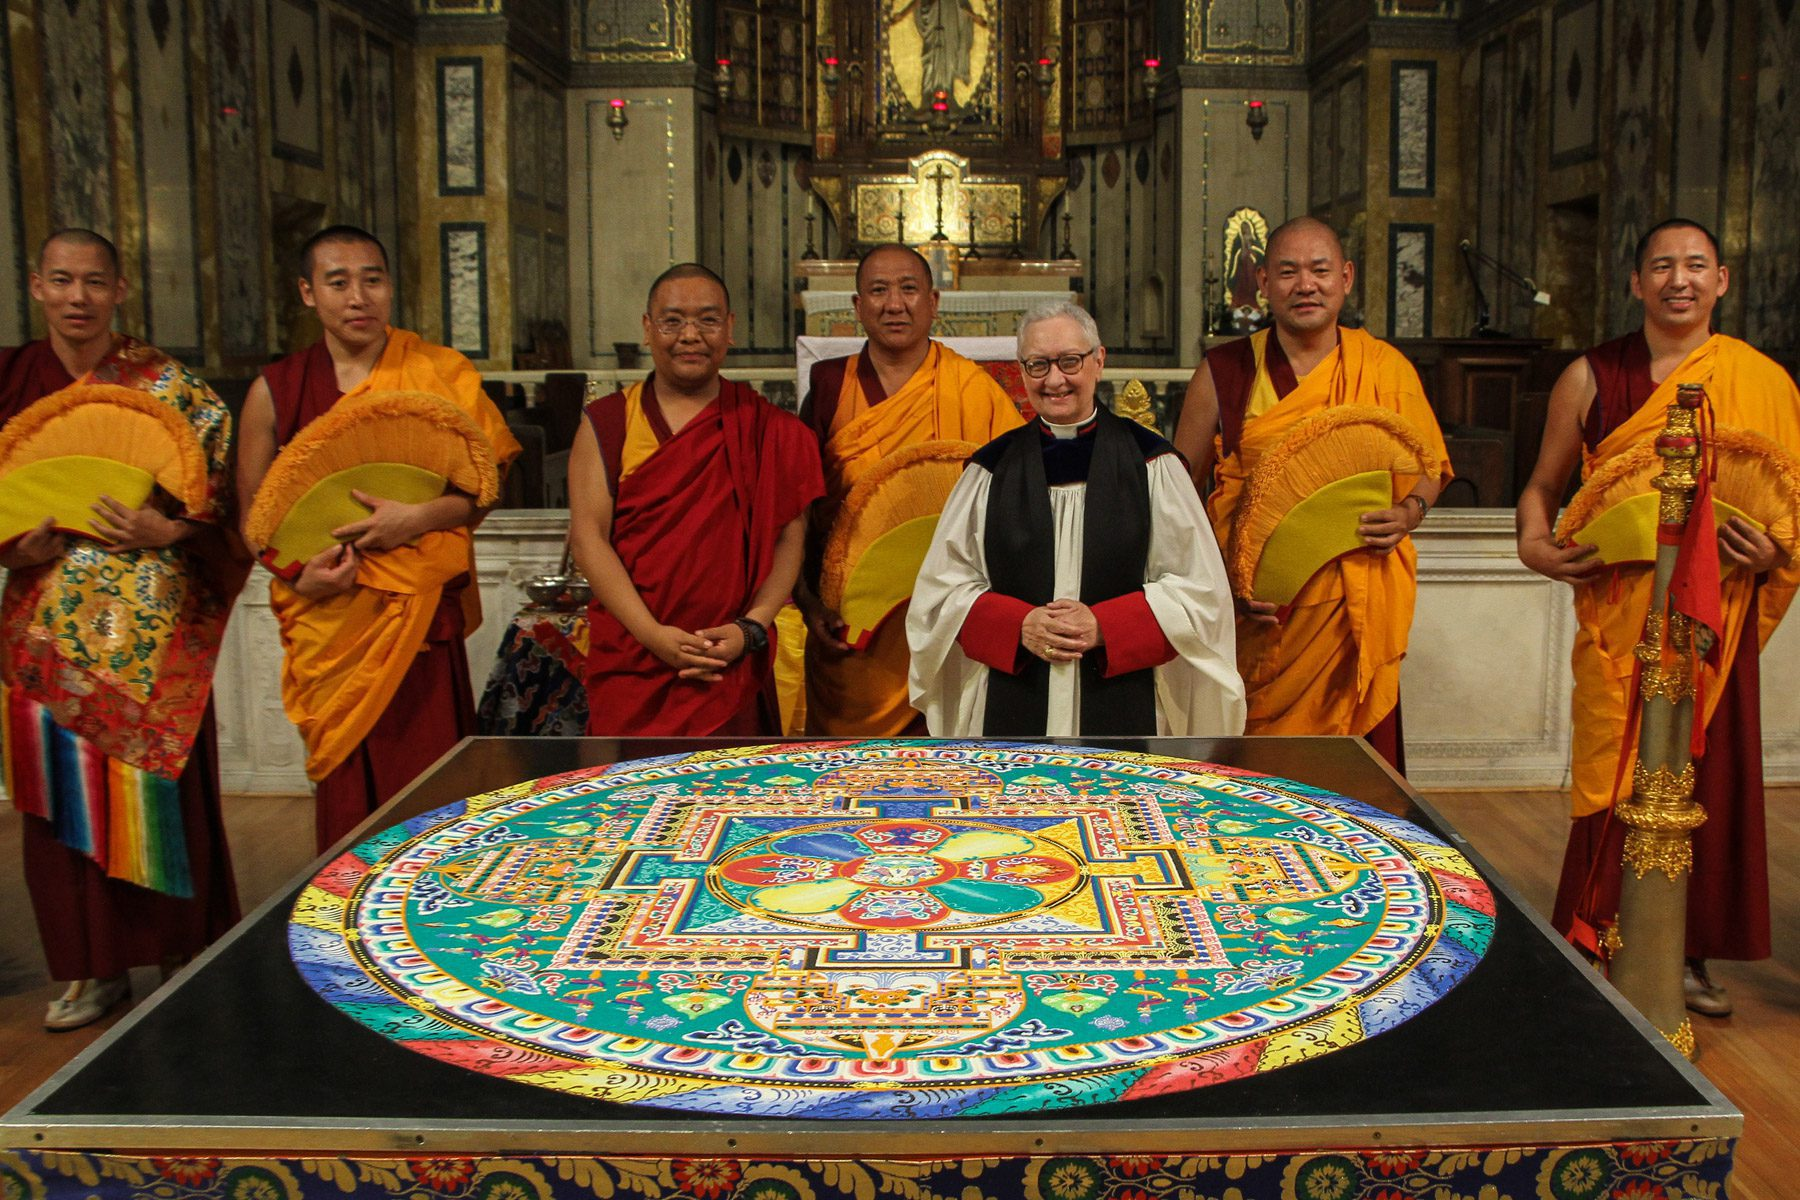 The monks and Dr. Guibord with the Mandala of Compassion